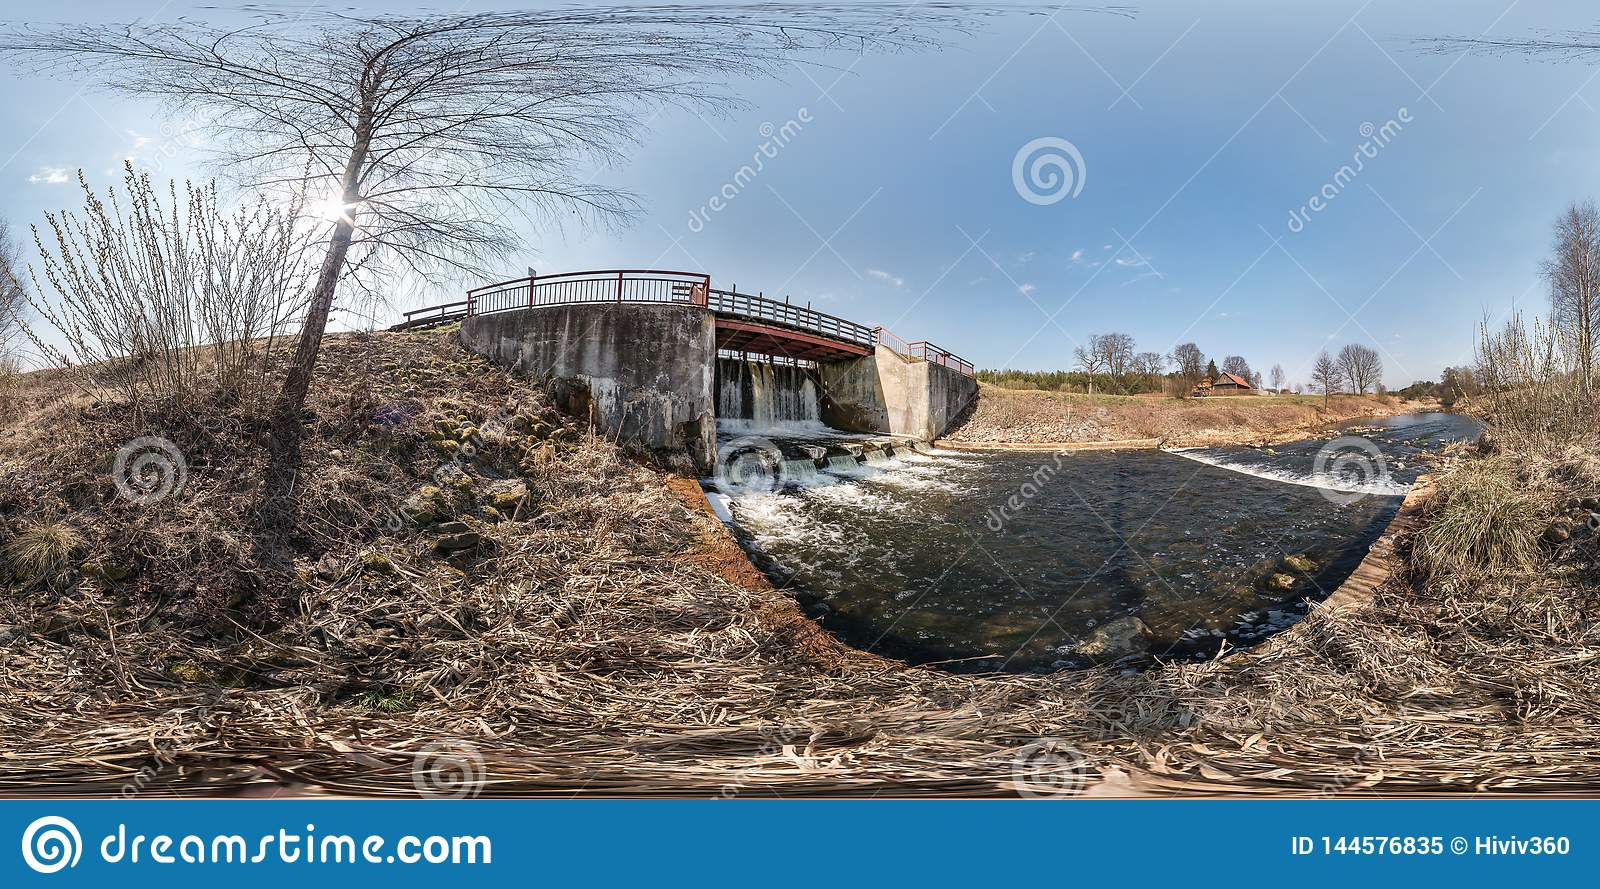 Full seamless spherical hdri panorama 360 angle view dam lock sluice on the river impetuous waterfall. background in